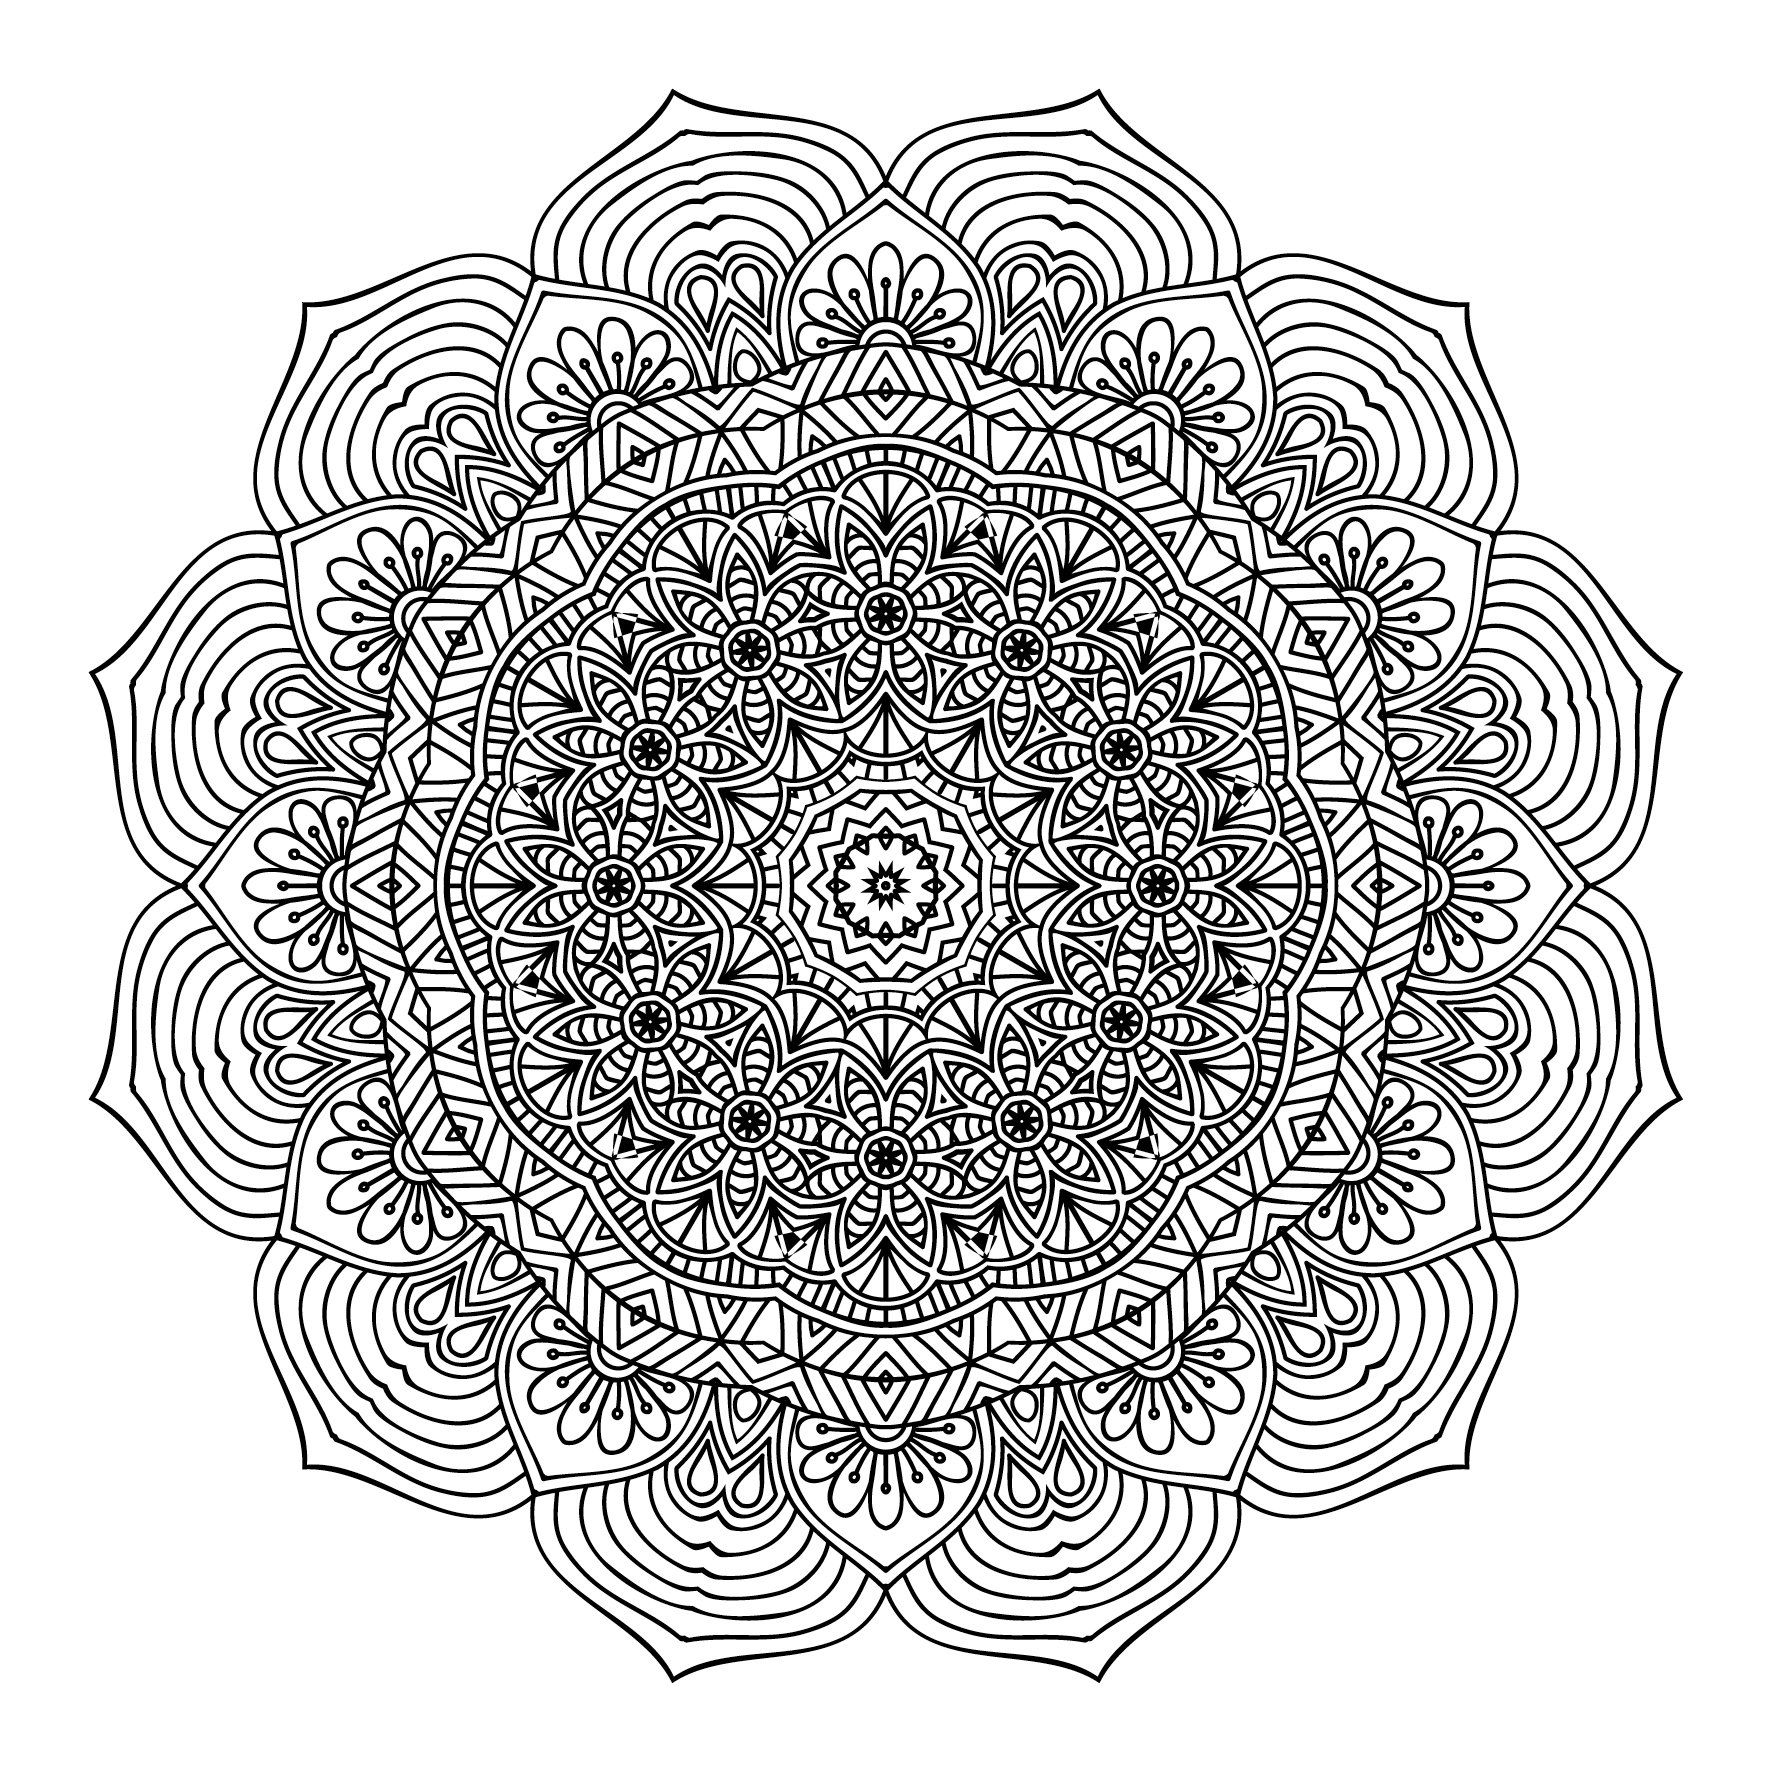 Buy The Second One And Only Mandala Colouring Book Second Mandala